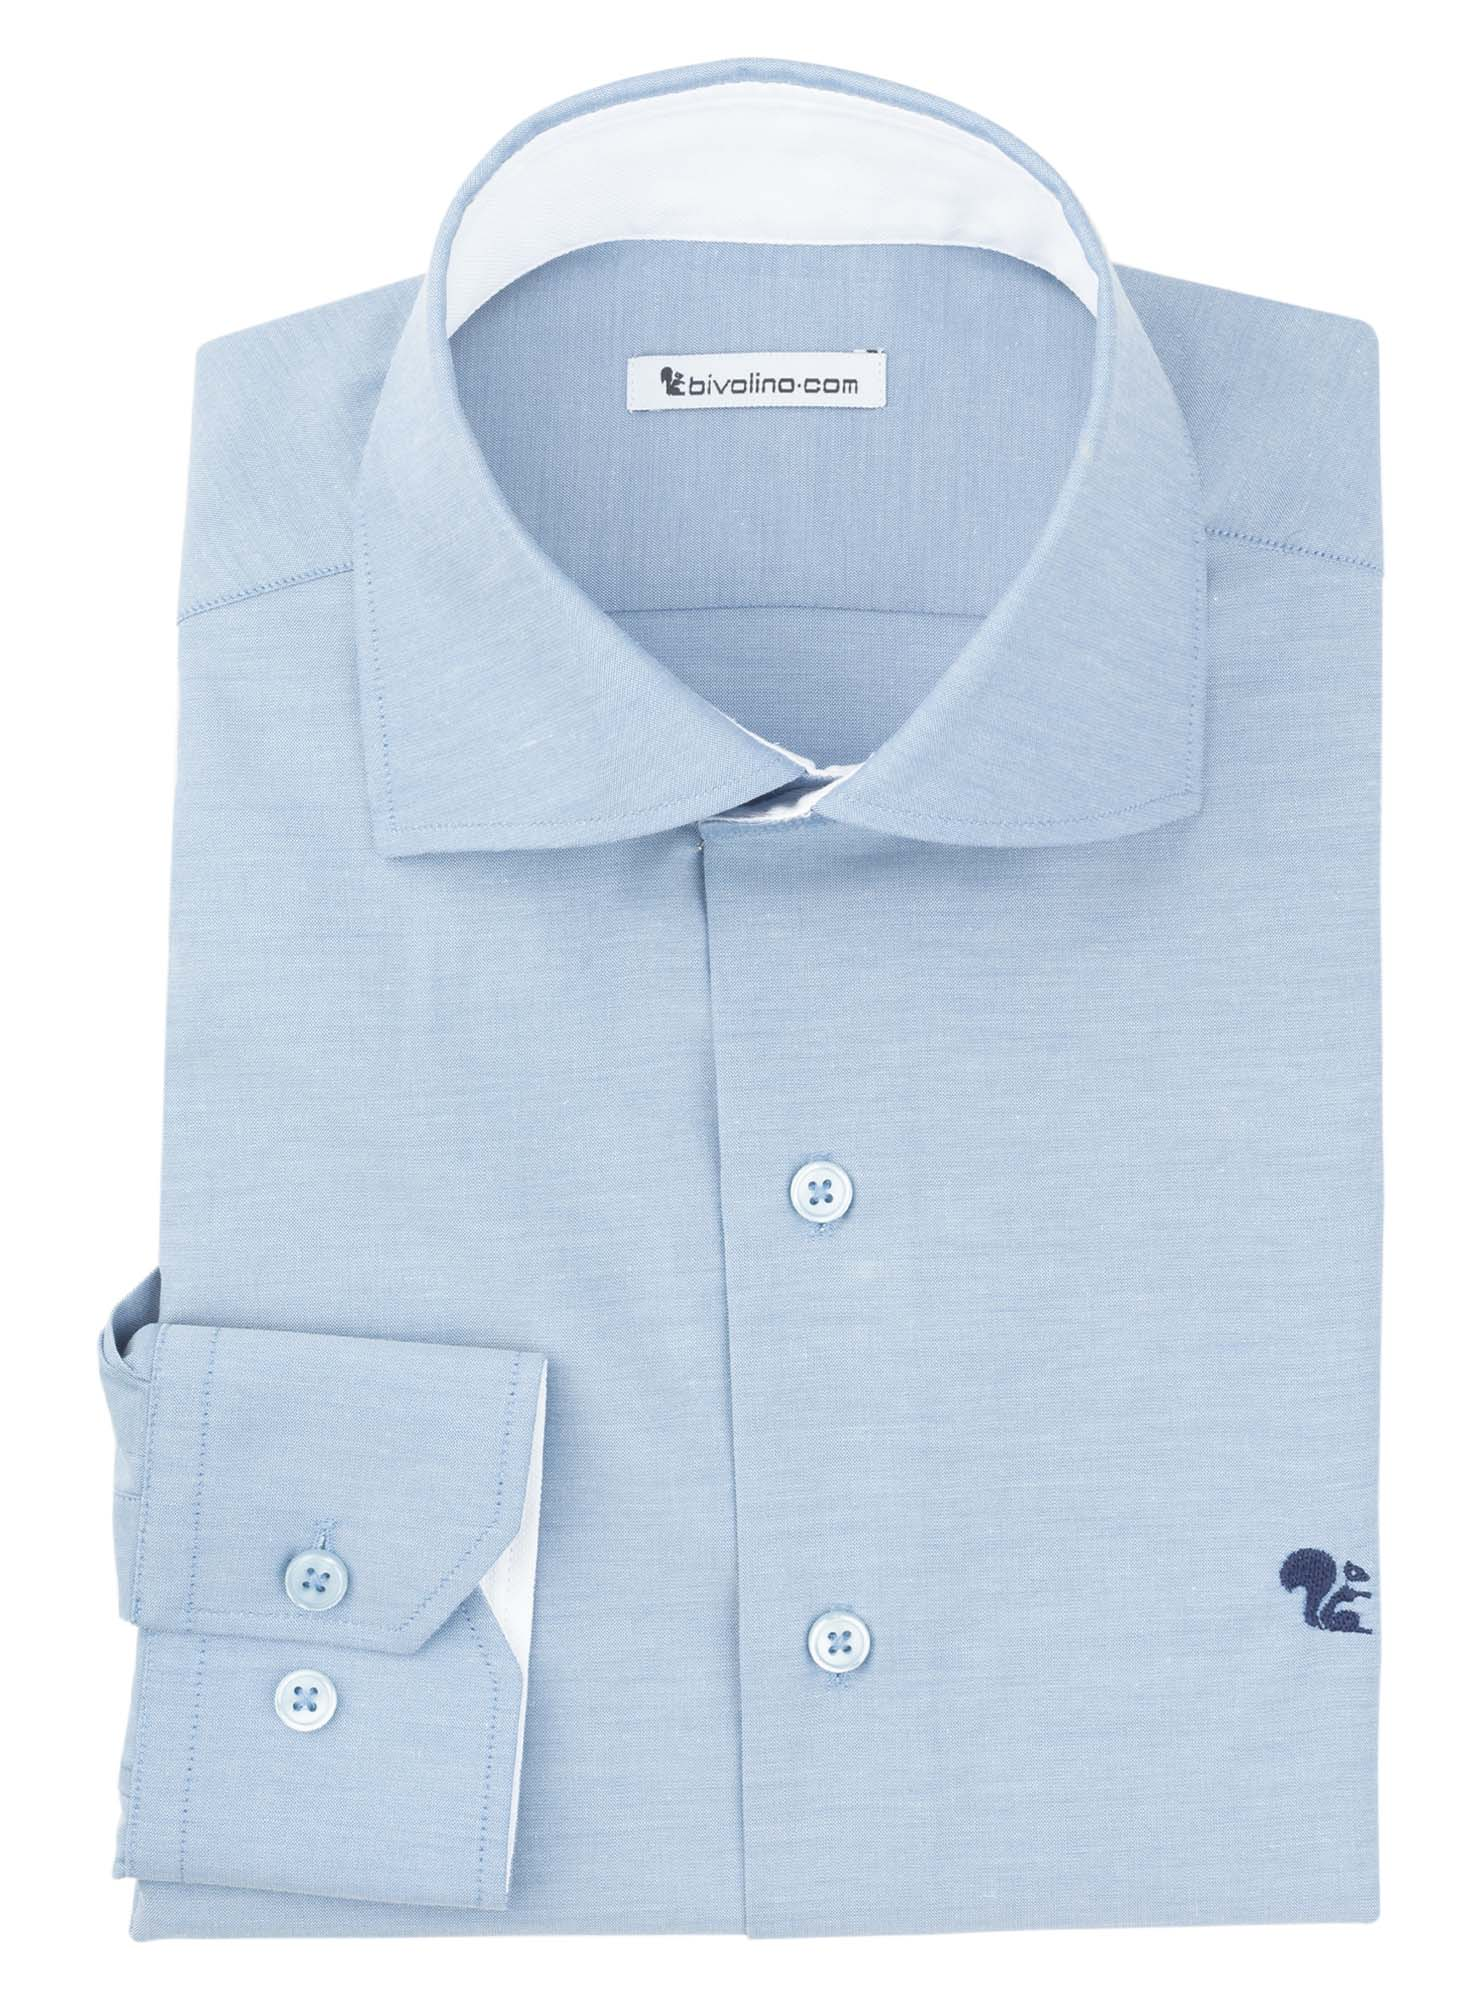 ACQUASPARTA - cot-pes blue plain men shirt - COLT 2